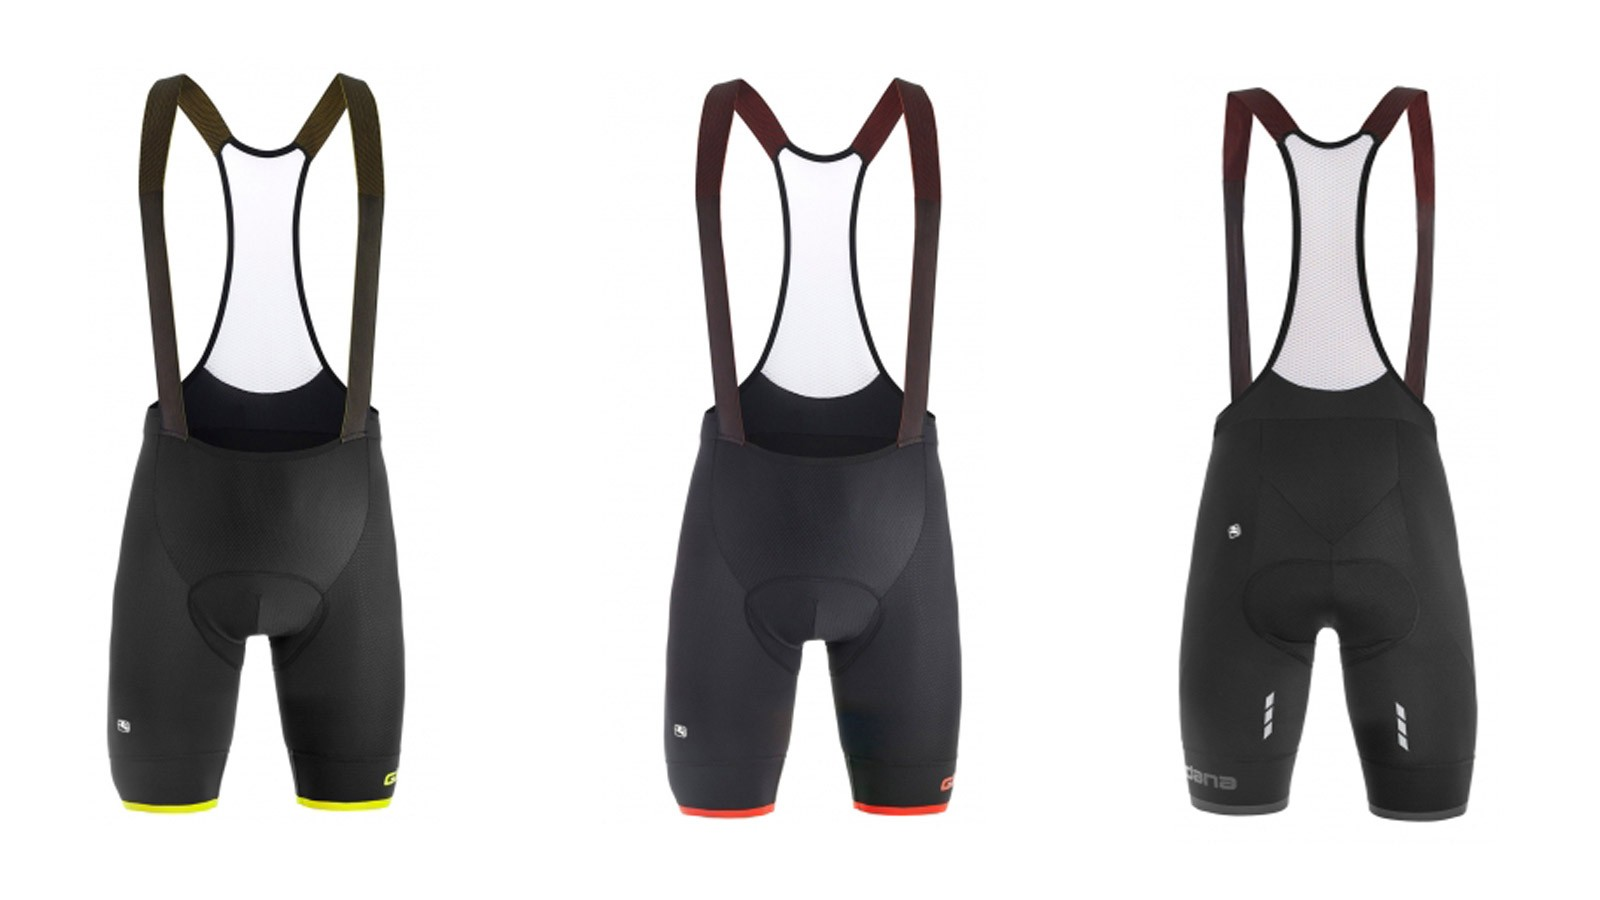 Giordana's Sahara bib shorts come in three colorways and Small - XX-Large sizes